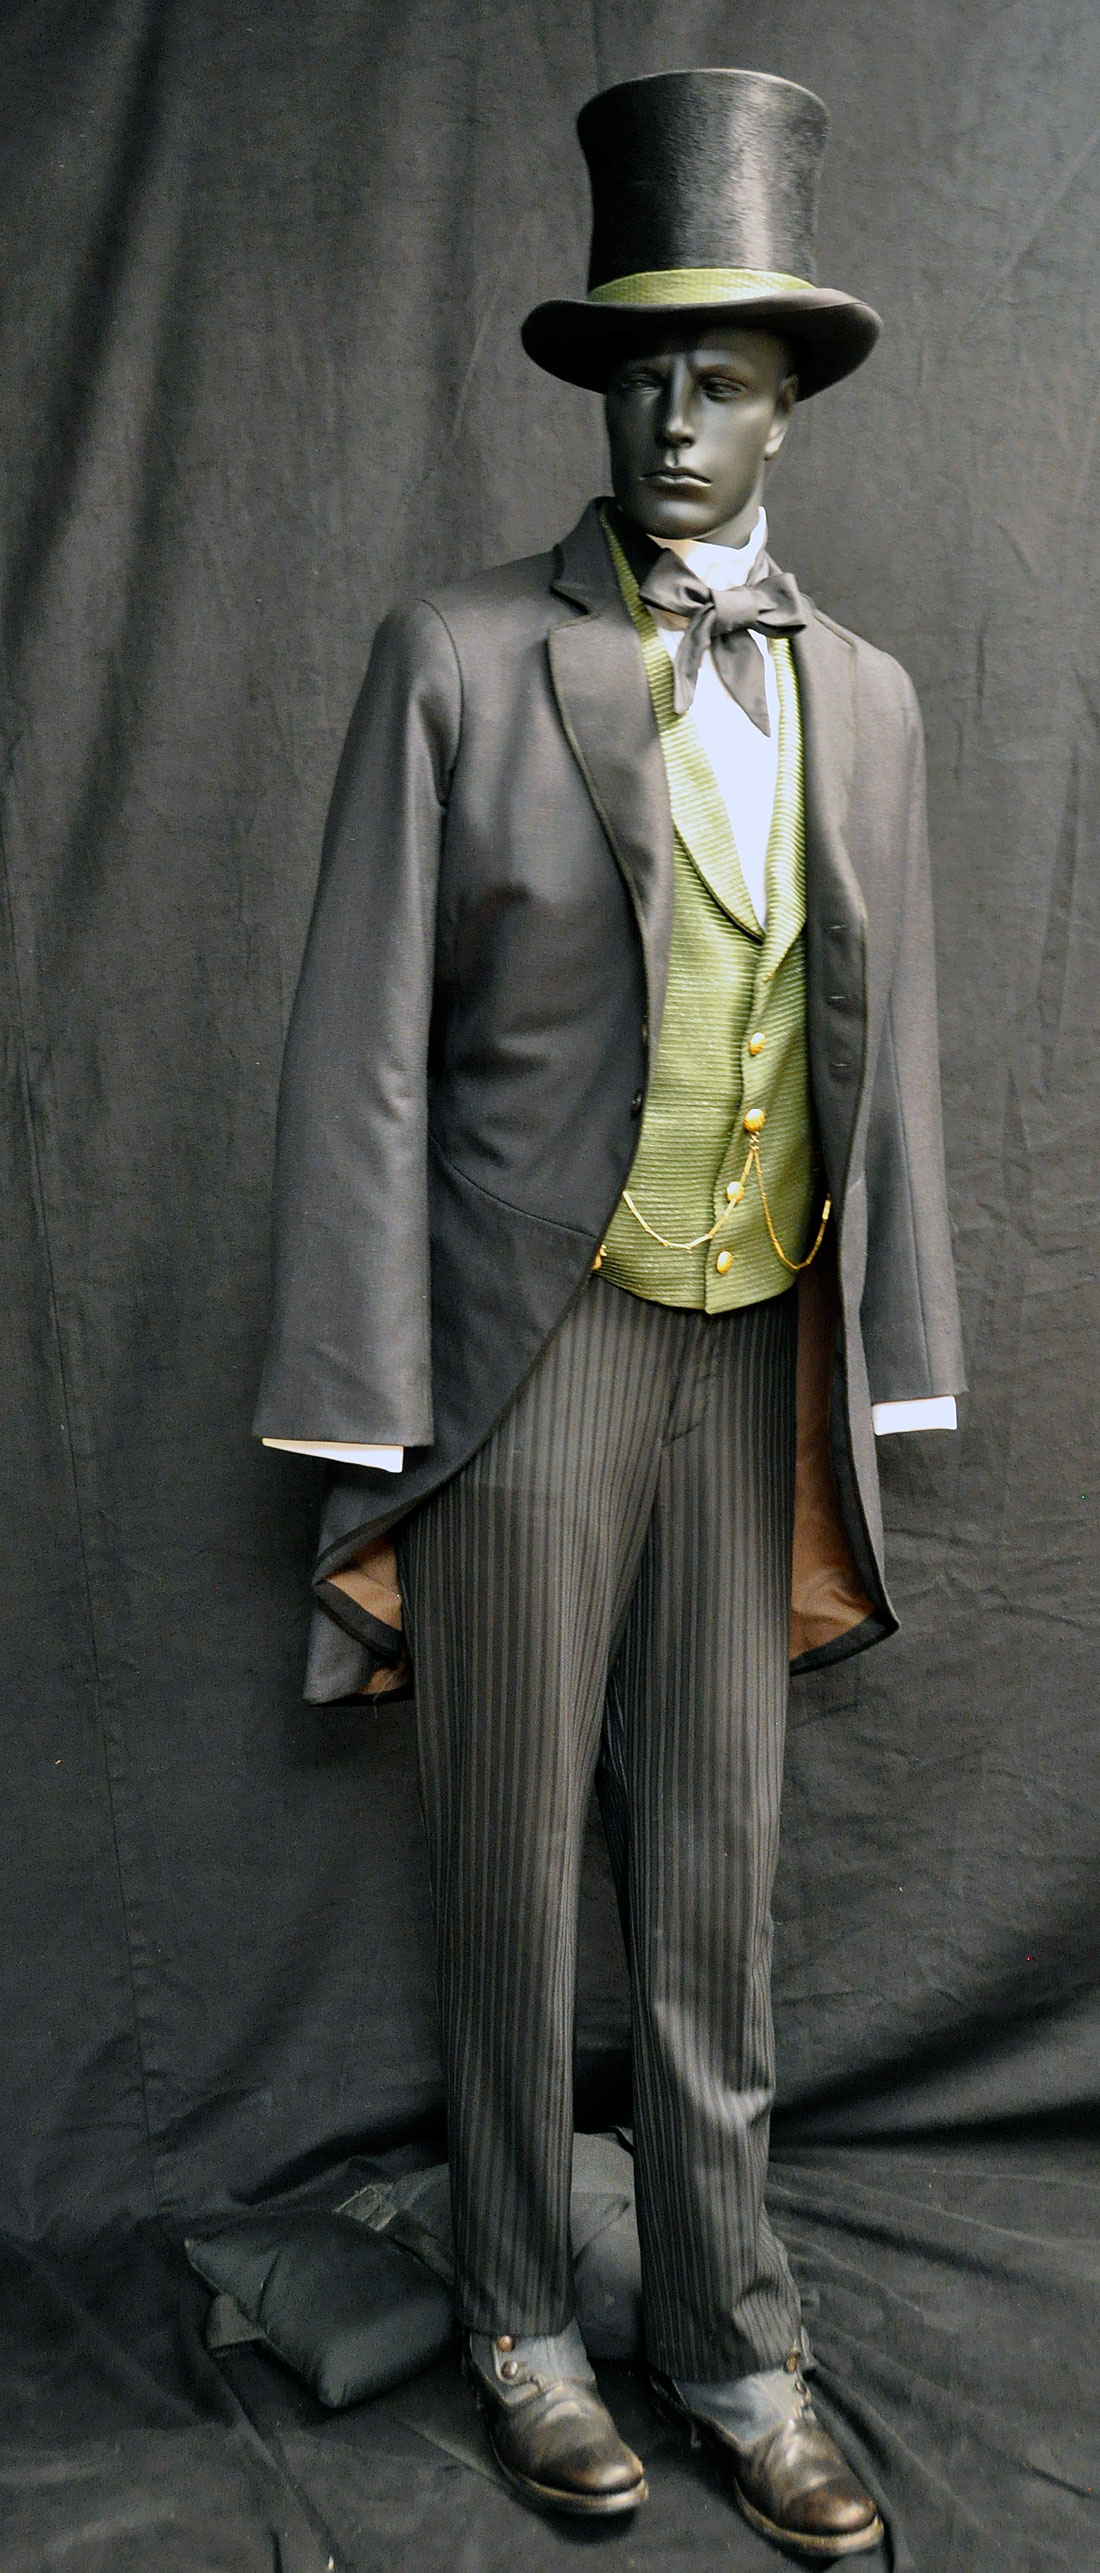 Costume & Makeup From Disney's Oz the Great and Powerful ...